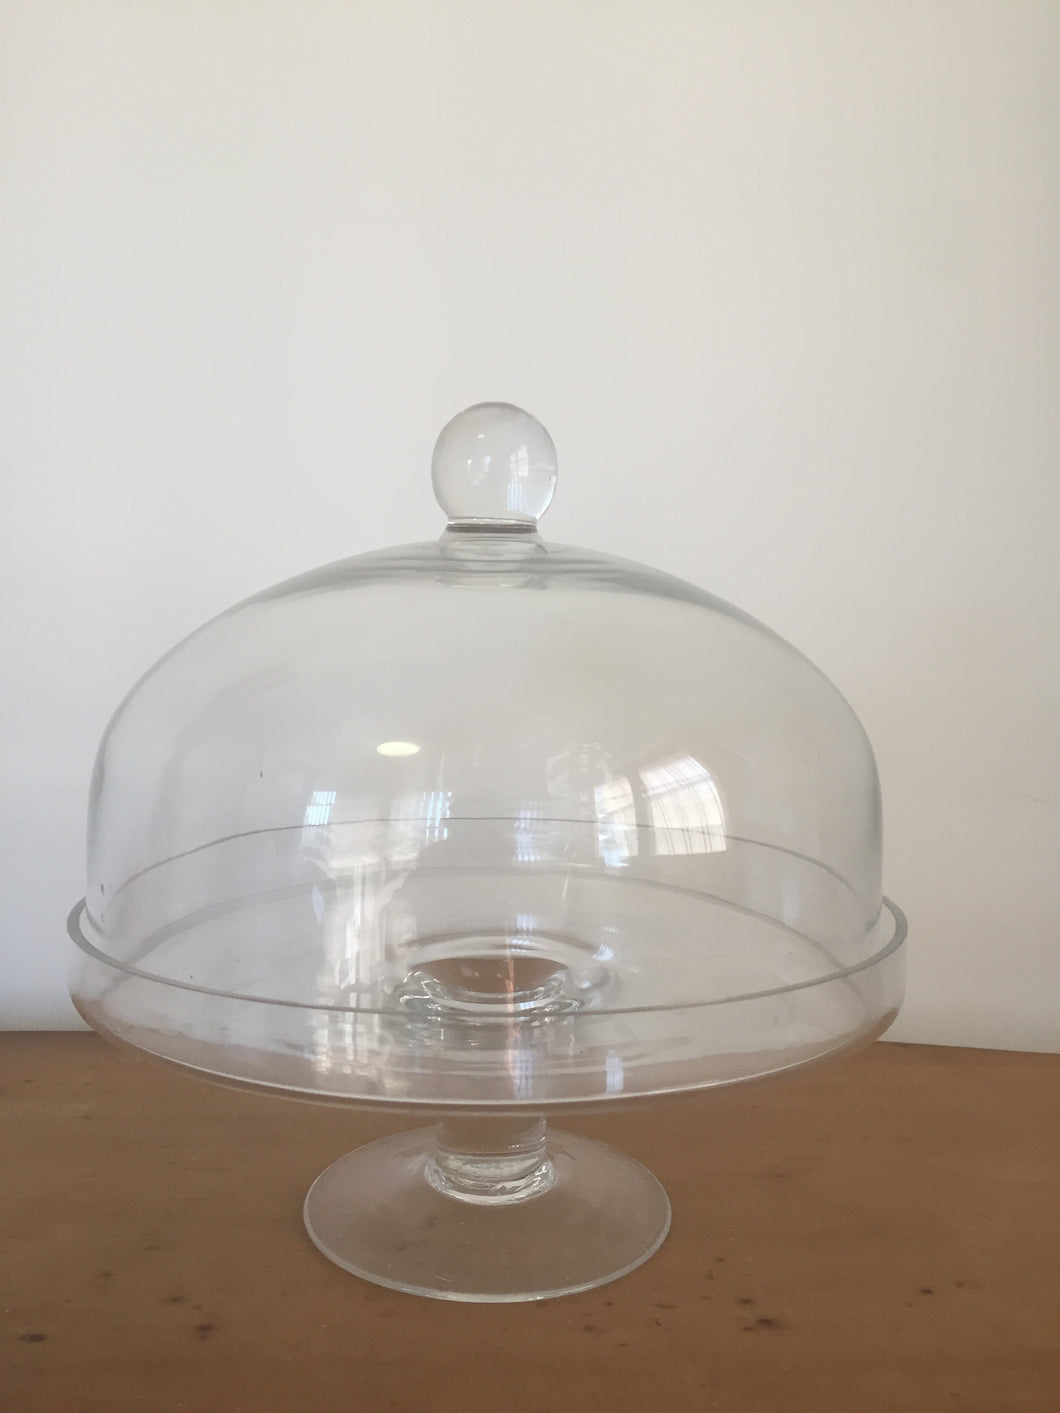 Cake stand with glass lid